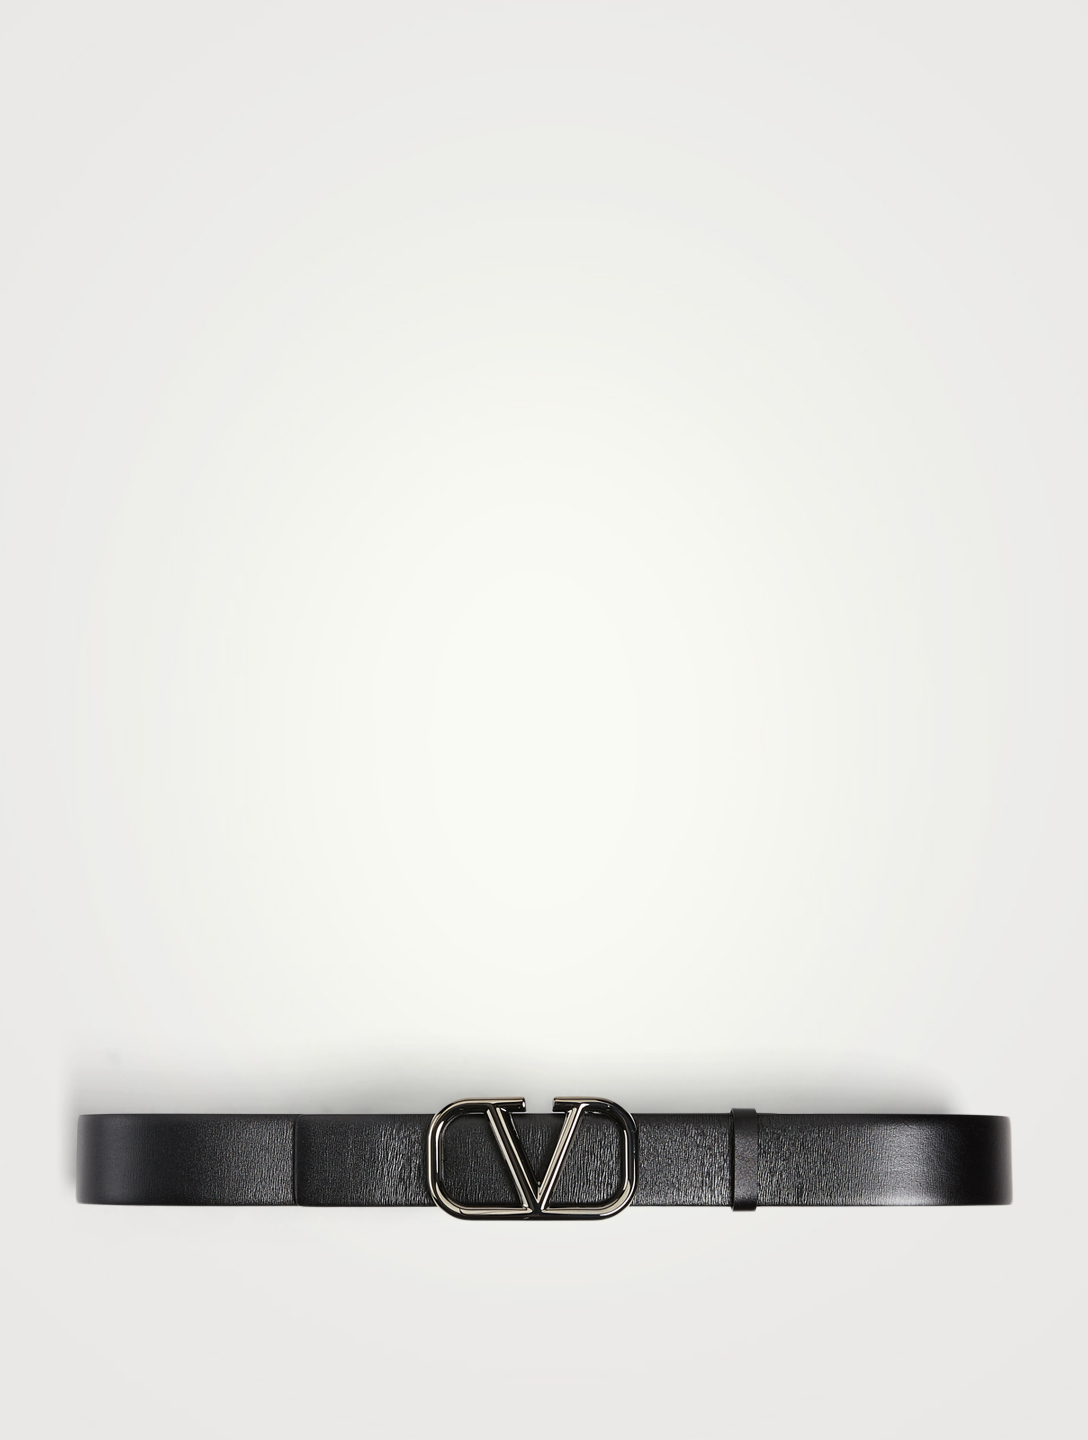 VALENTINO GARAVANI VLOGO Signature Leather Belt Men's Black